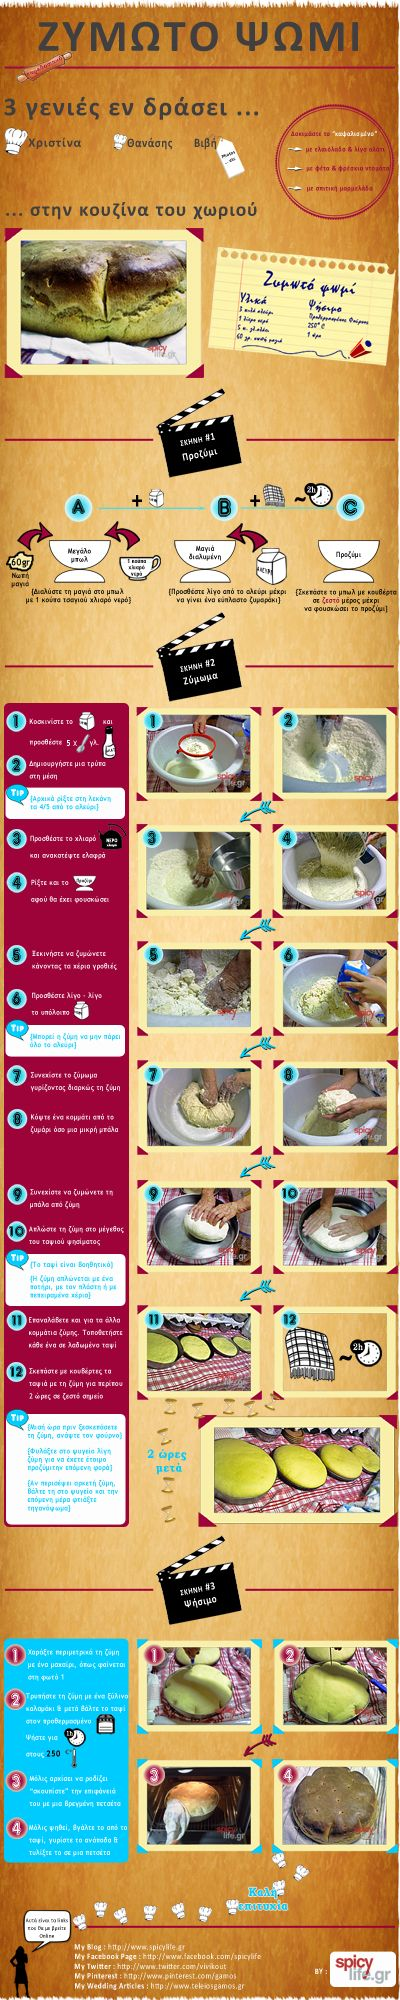 Recipe infographic in Greek language. How to make traditional bread. With real photos & graphics